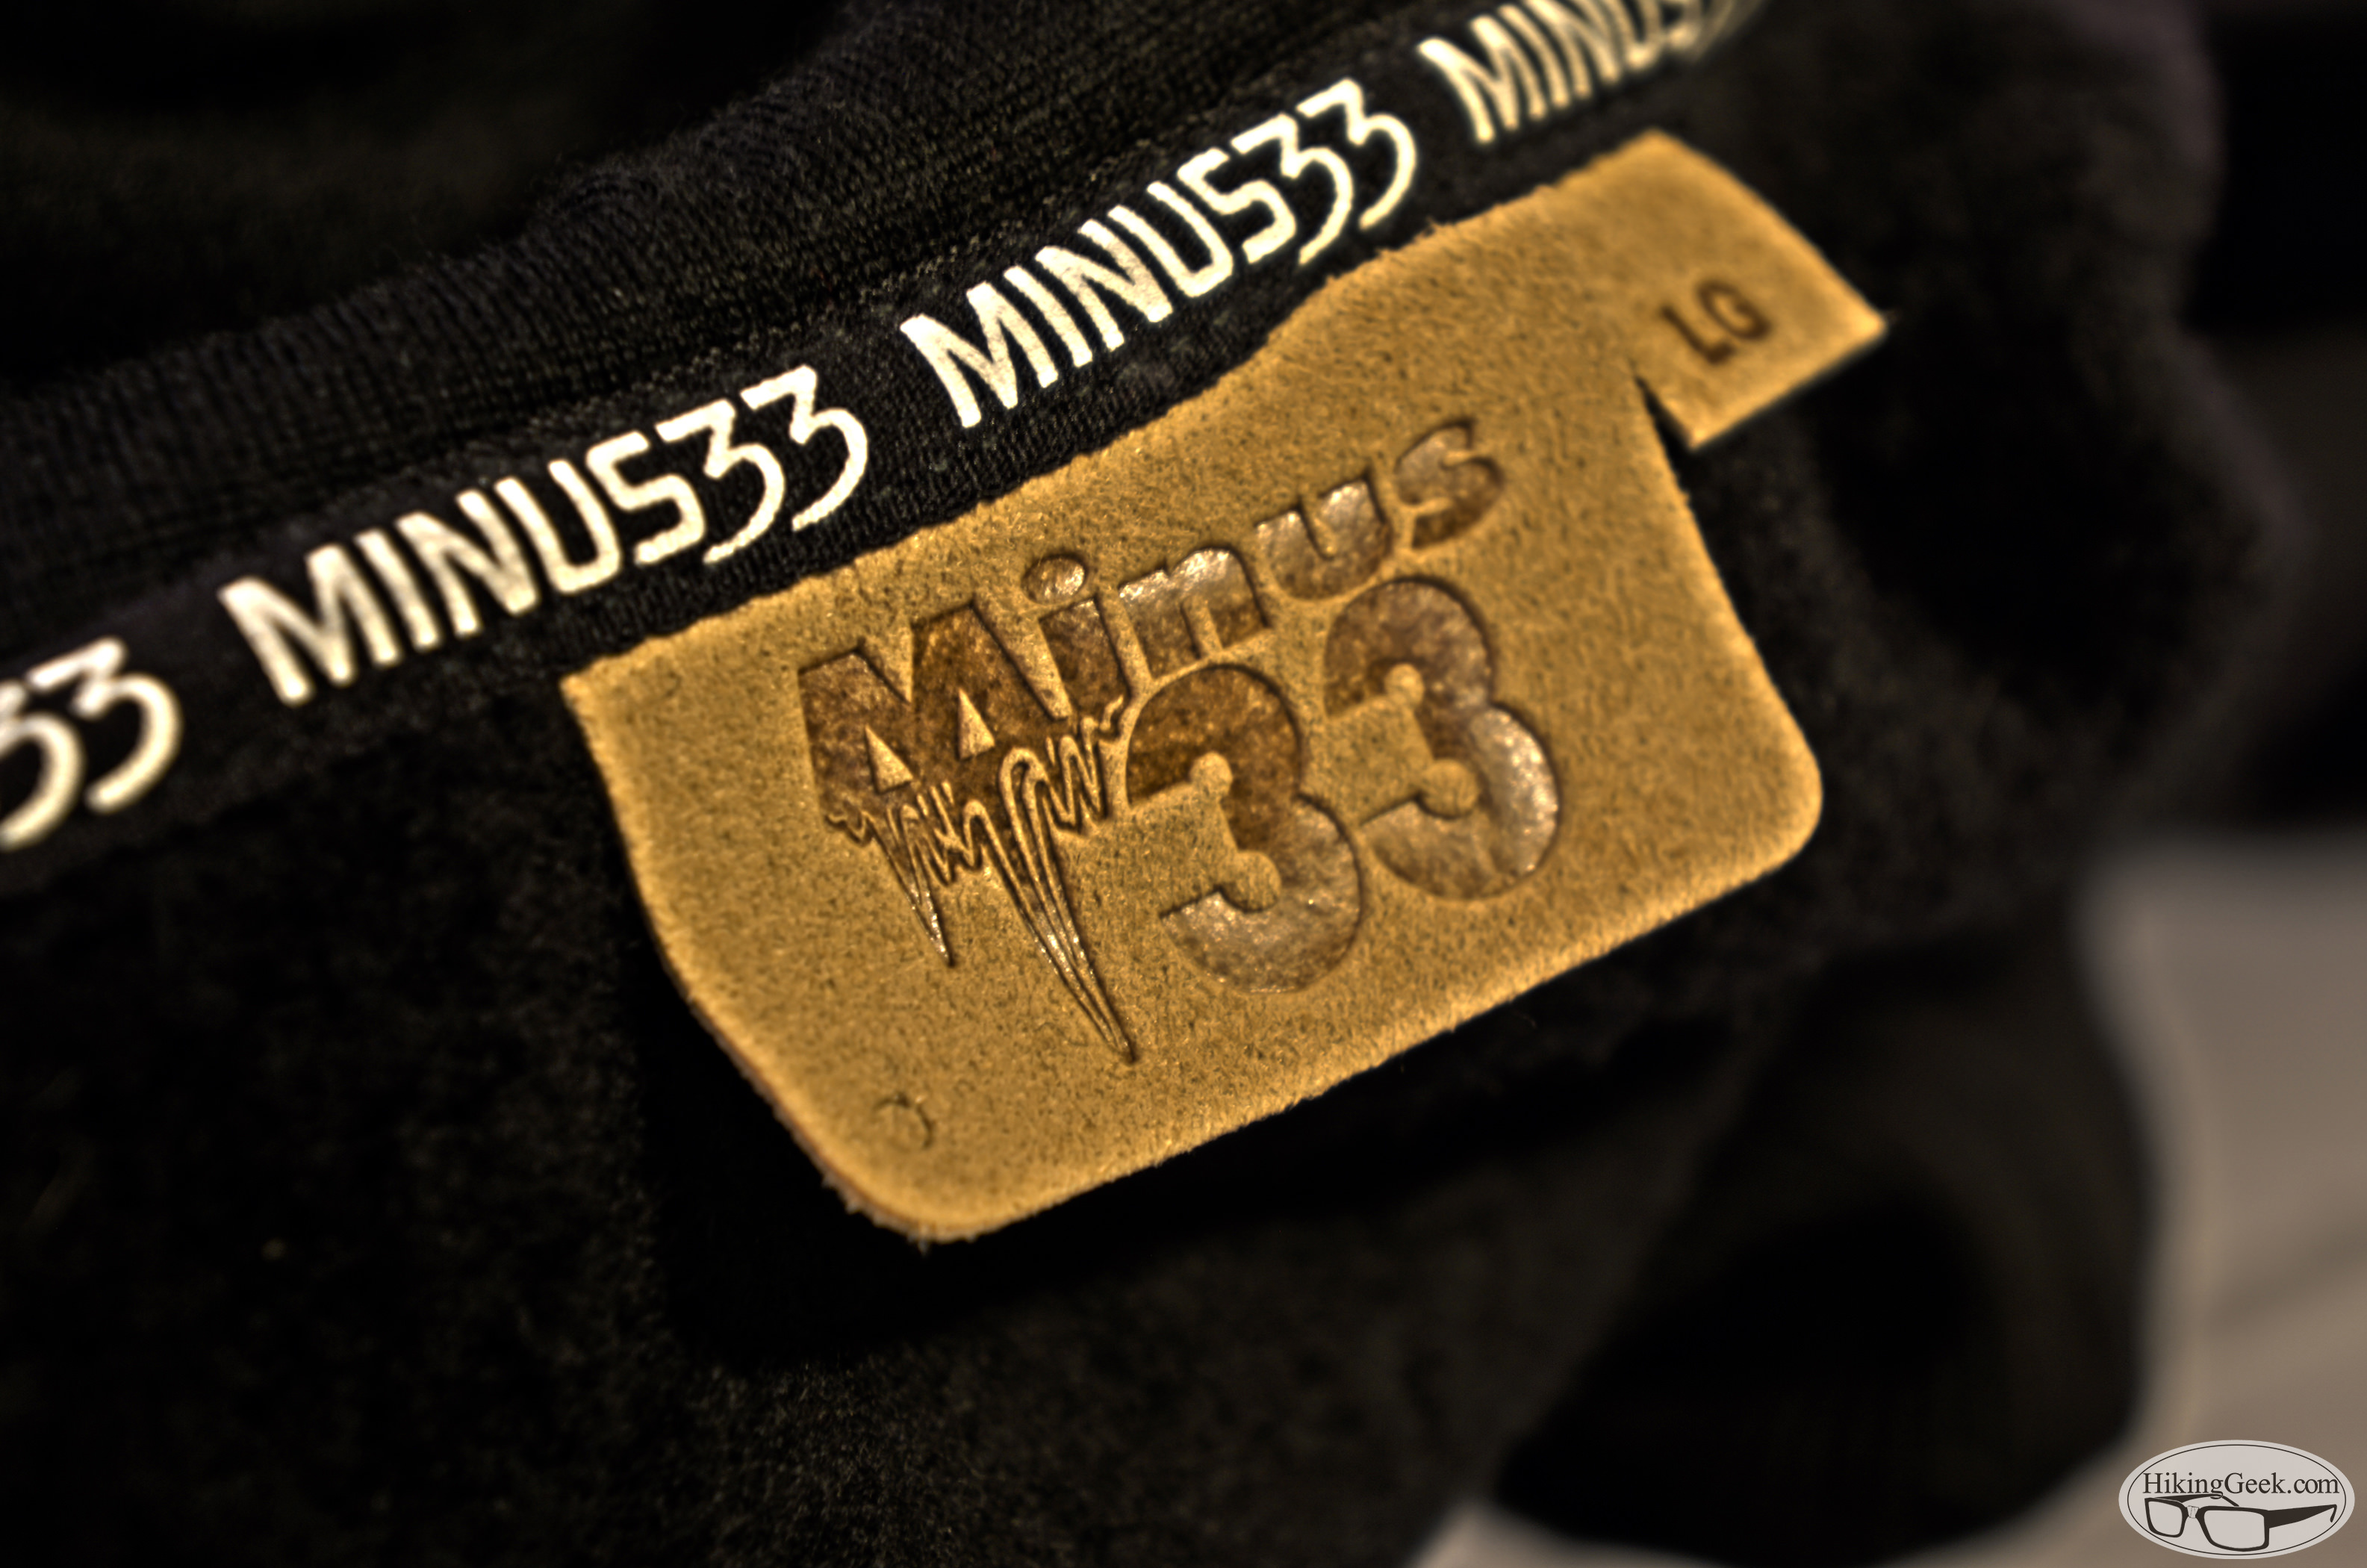 Under Review: Minus33 Merino Wool – Kodiak Expedition Full Zip Hoody & Day Hiker Socks